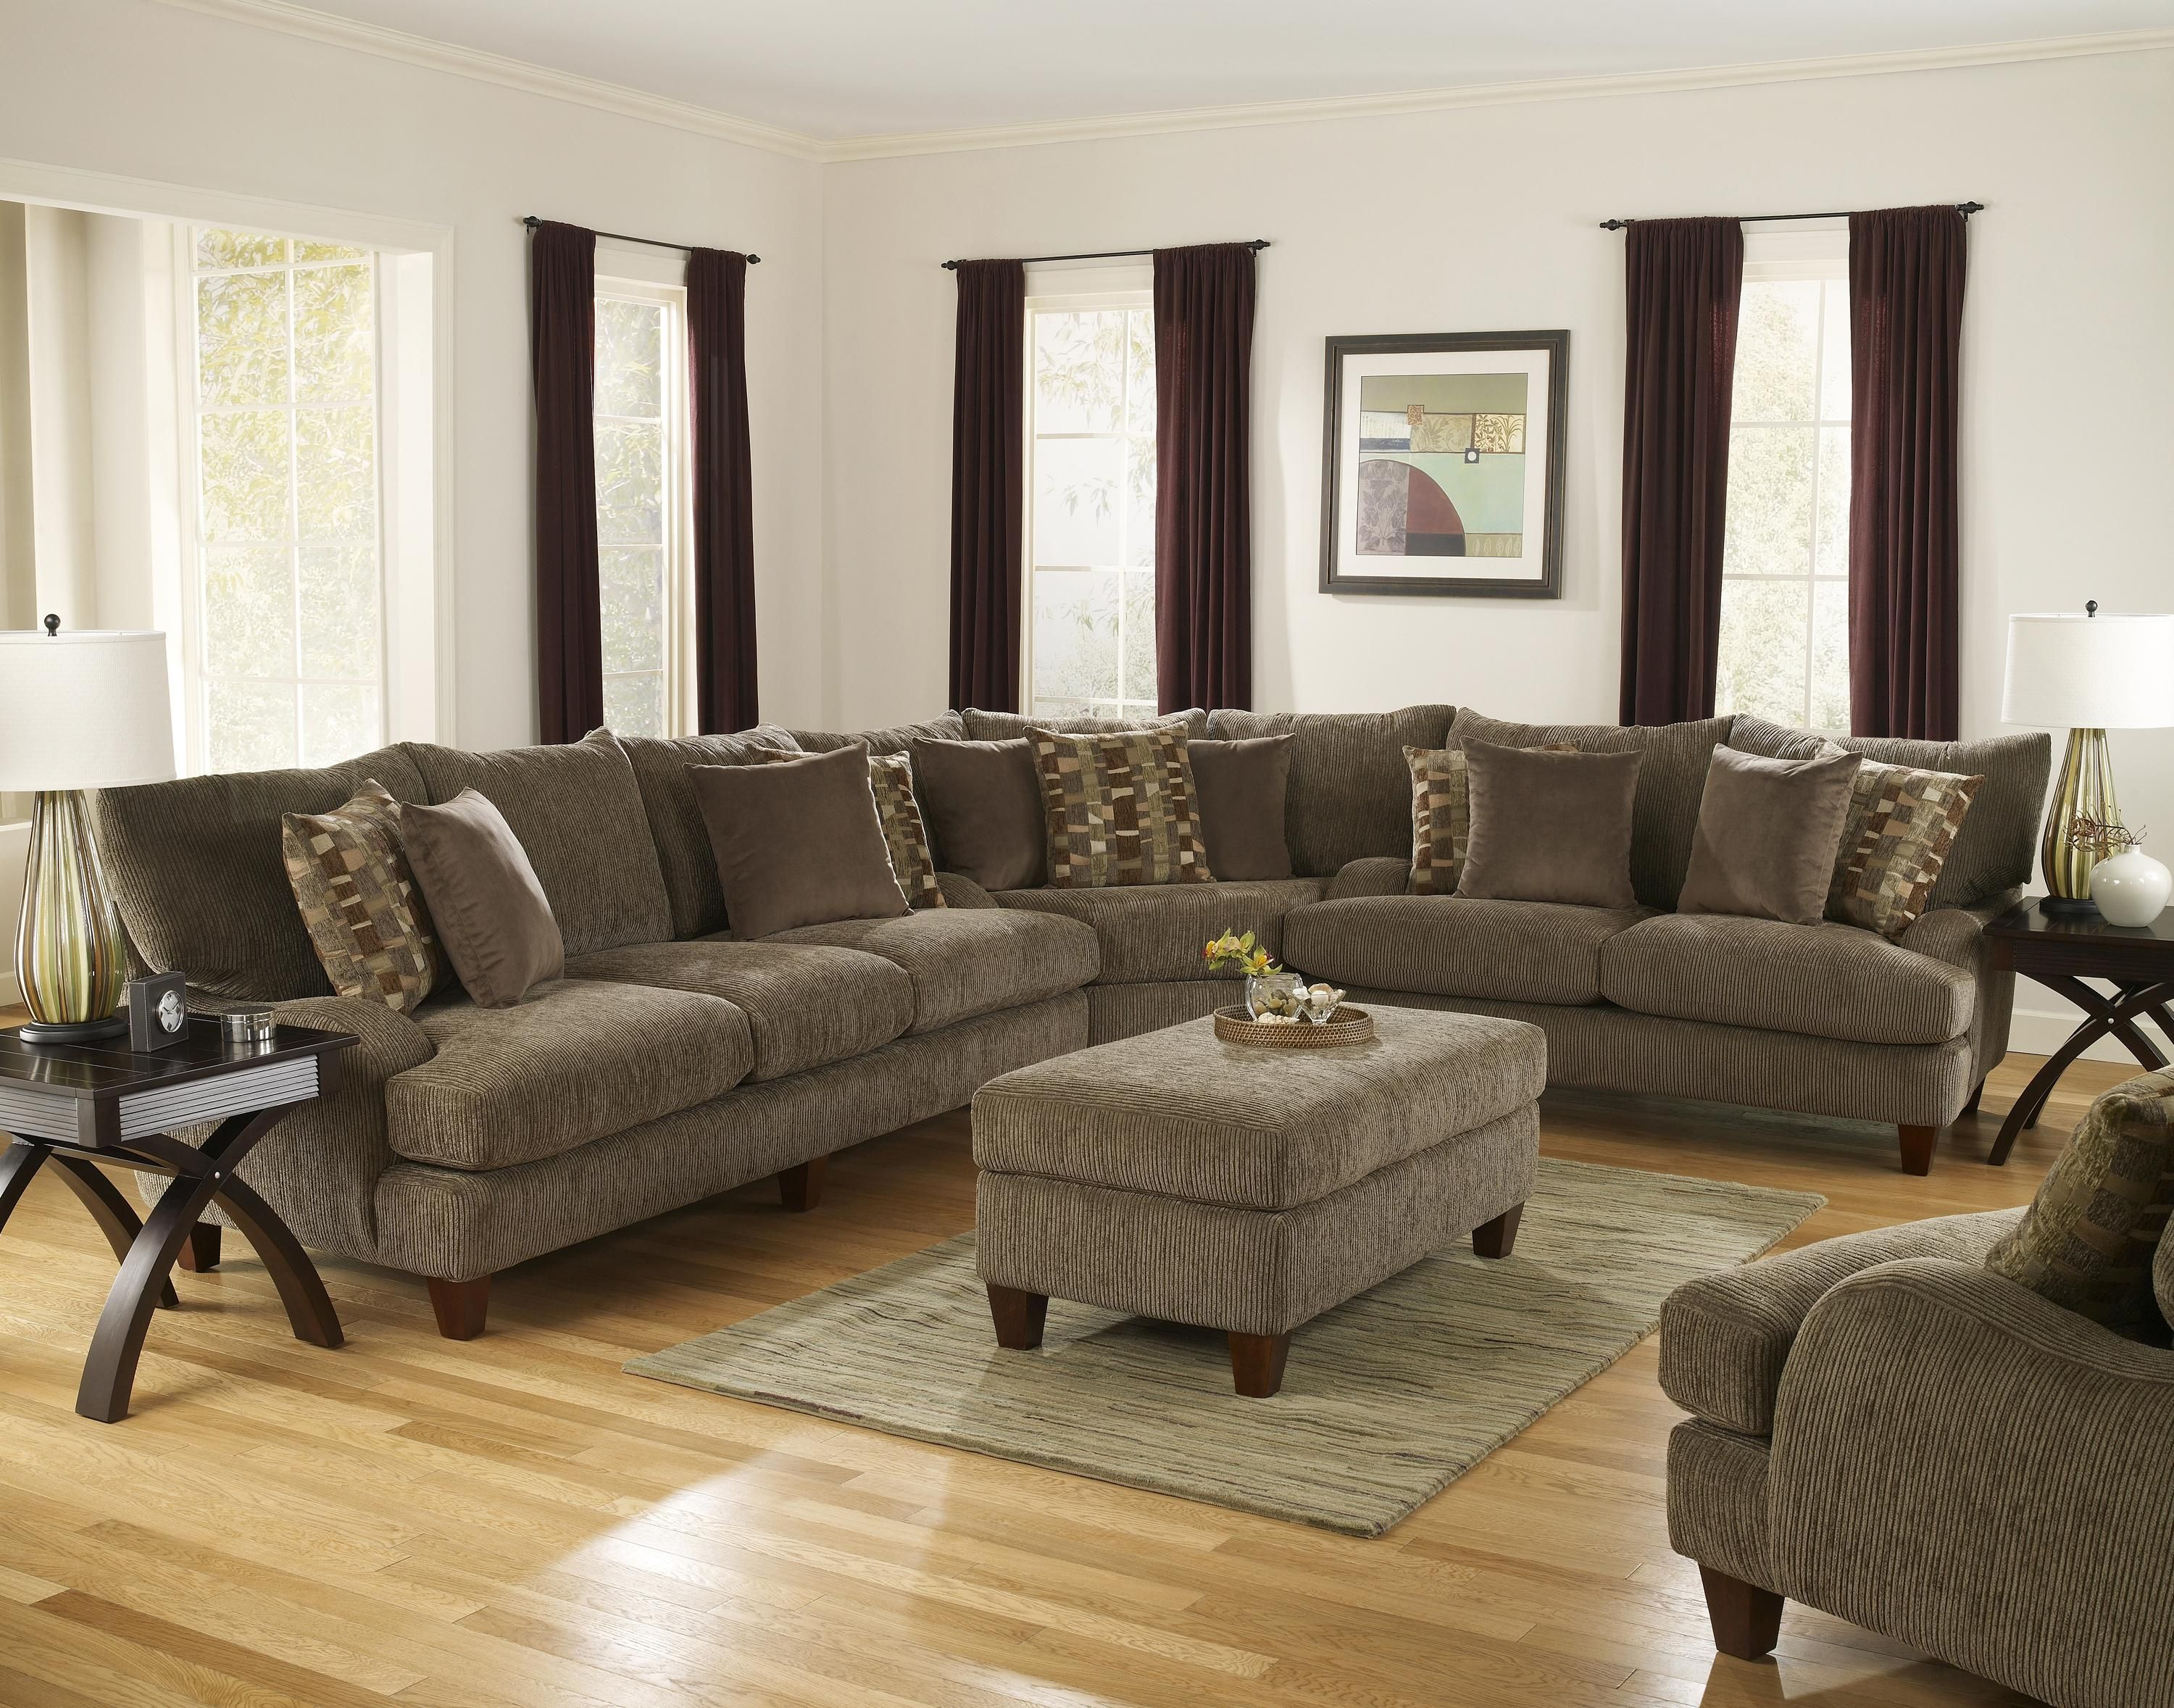 1790 Sectional By Corinthian Leather Living Room Furniture Furniture Living Room Designs